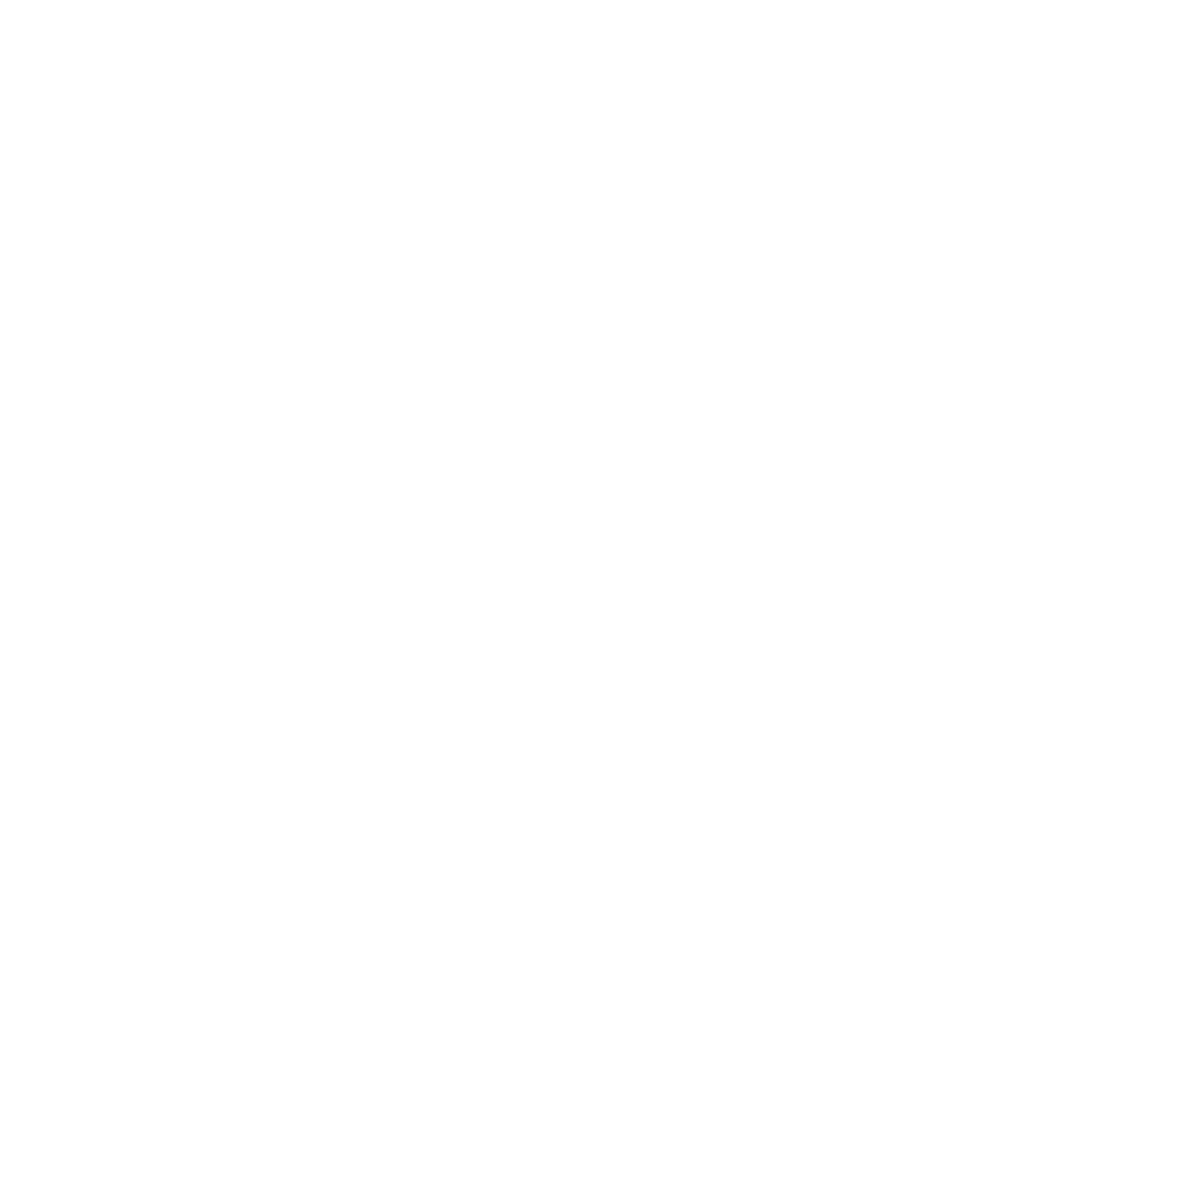 Great_Basin_Brewing_2019_Logo_-_FINAL_-_Reverse.png